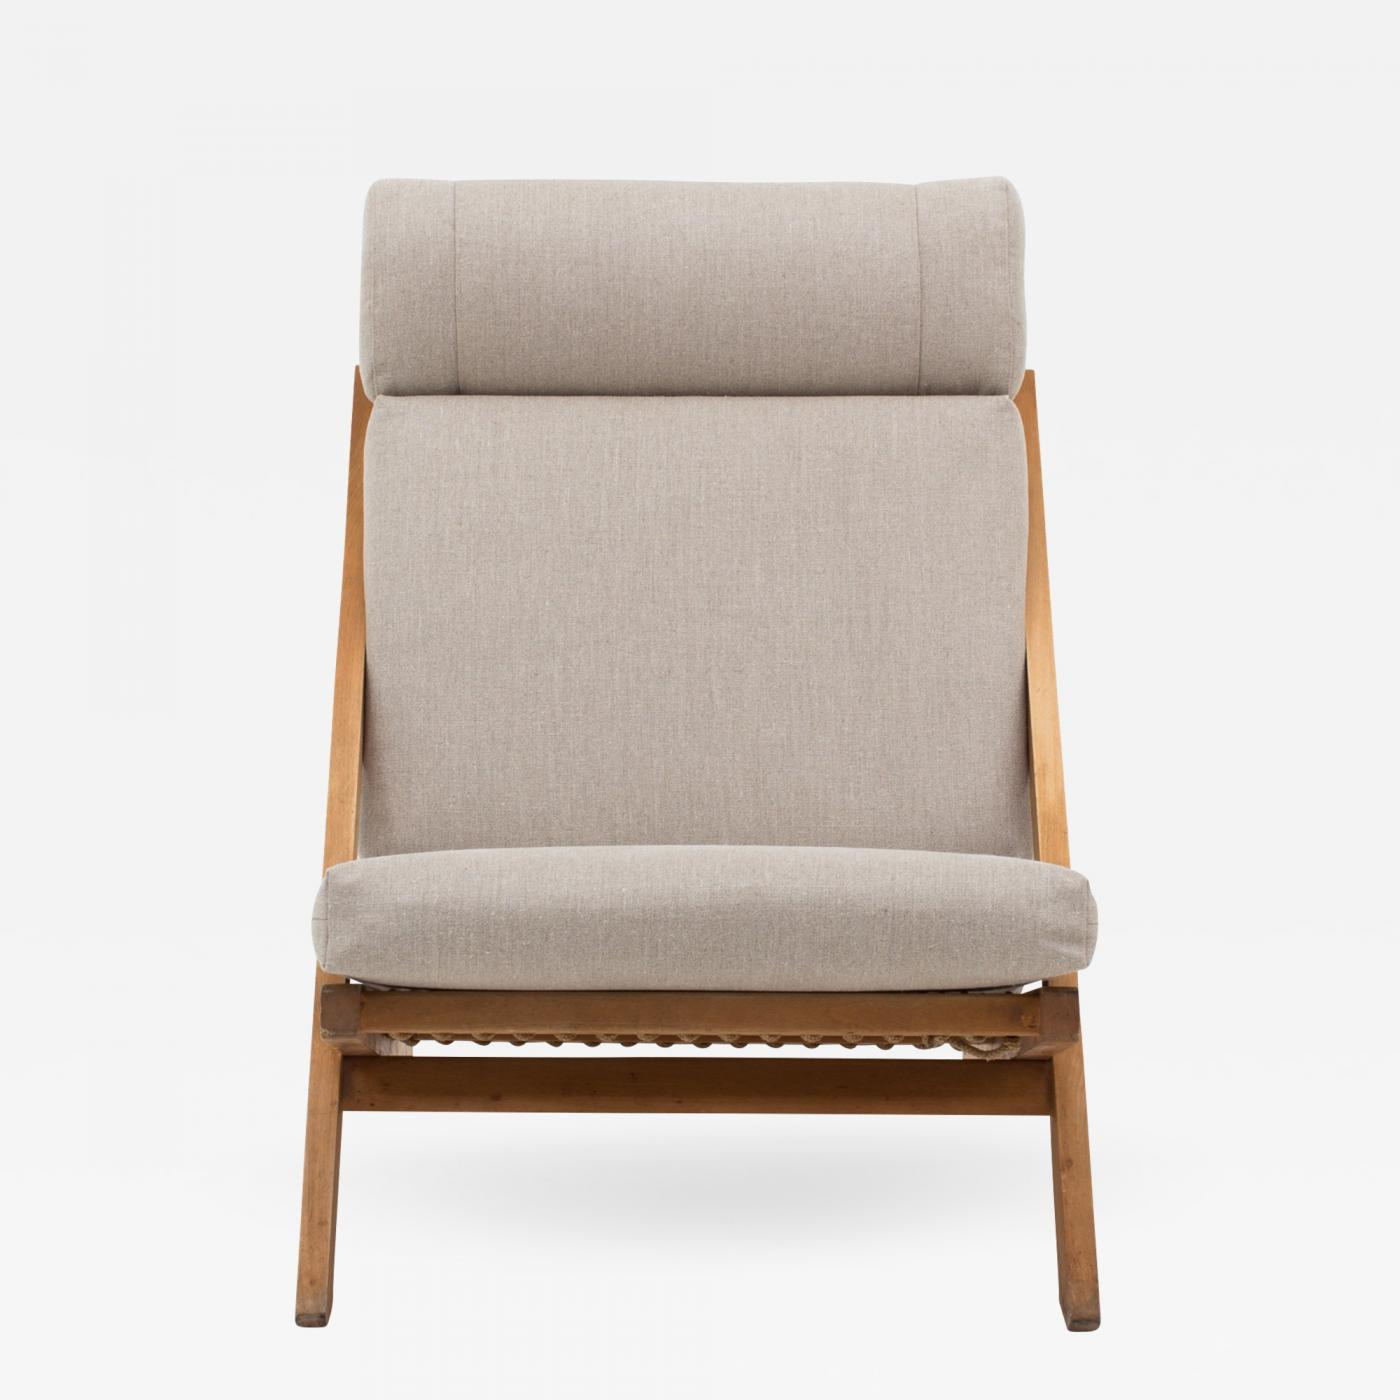 Hans J Wegner CH 3 Lounge Chair in Beech